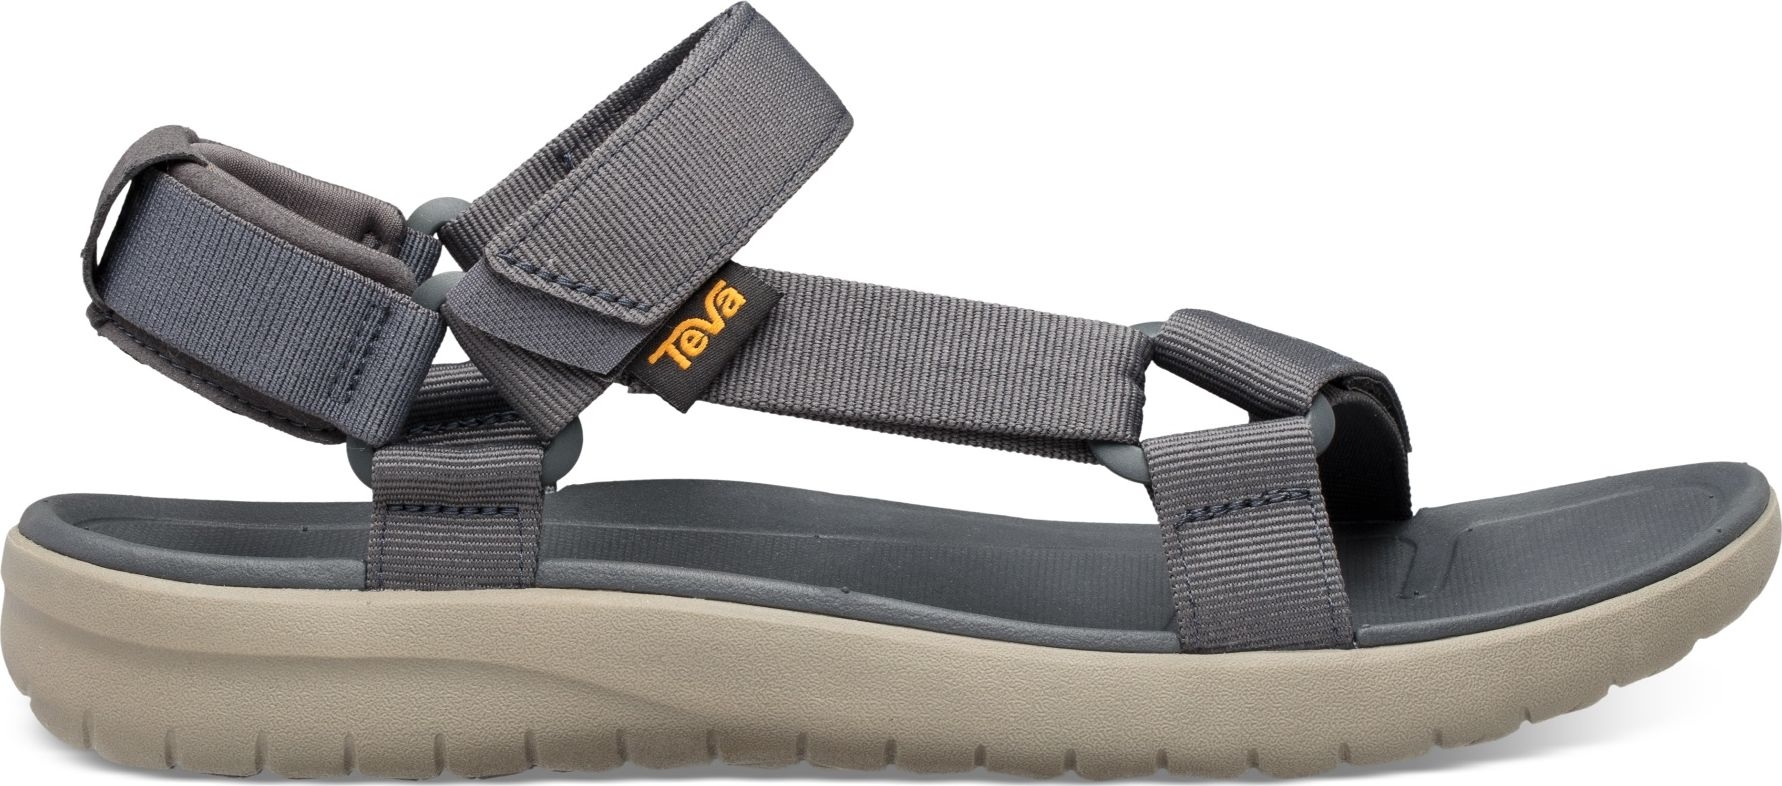 Teva Sanborn Universal Men's Dark Shadow 40,5